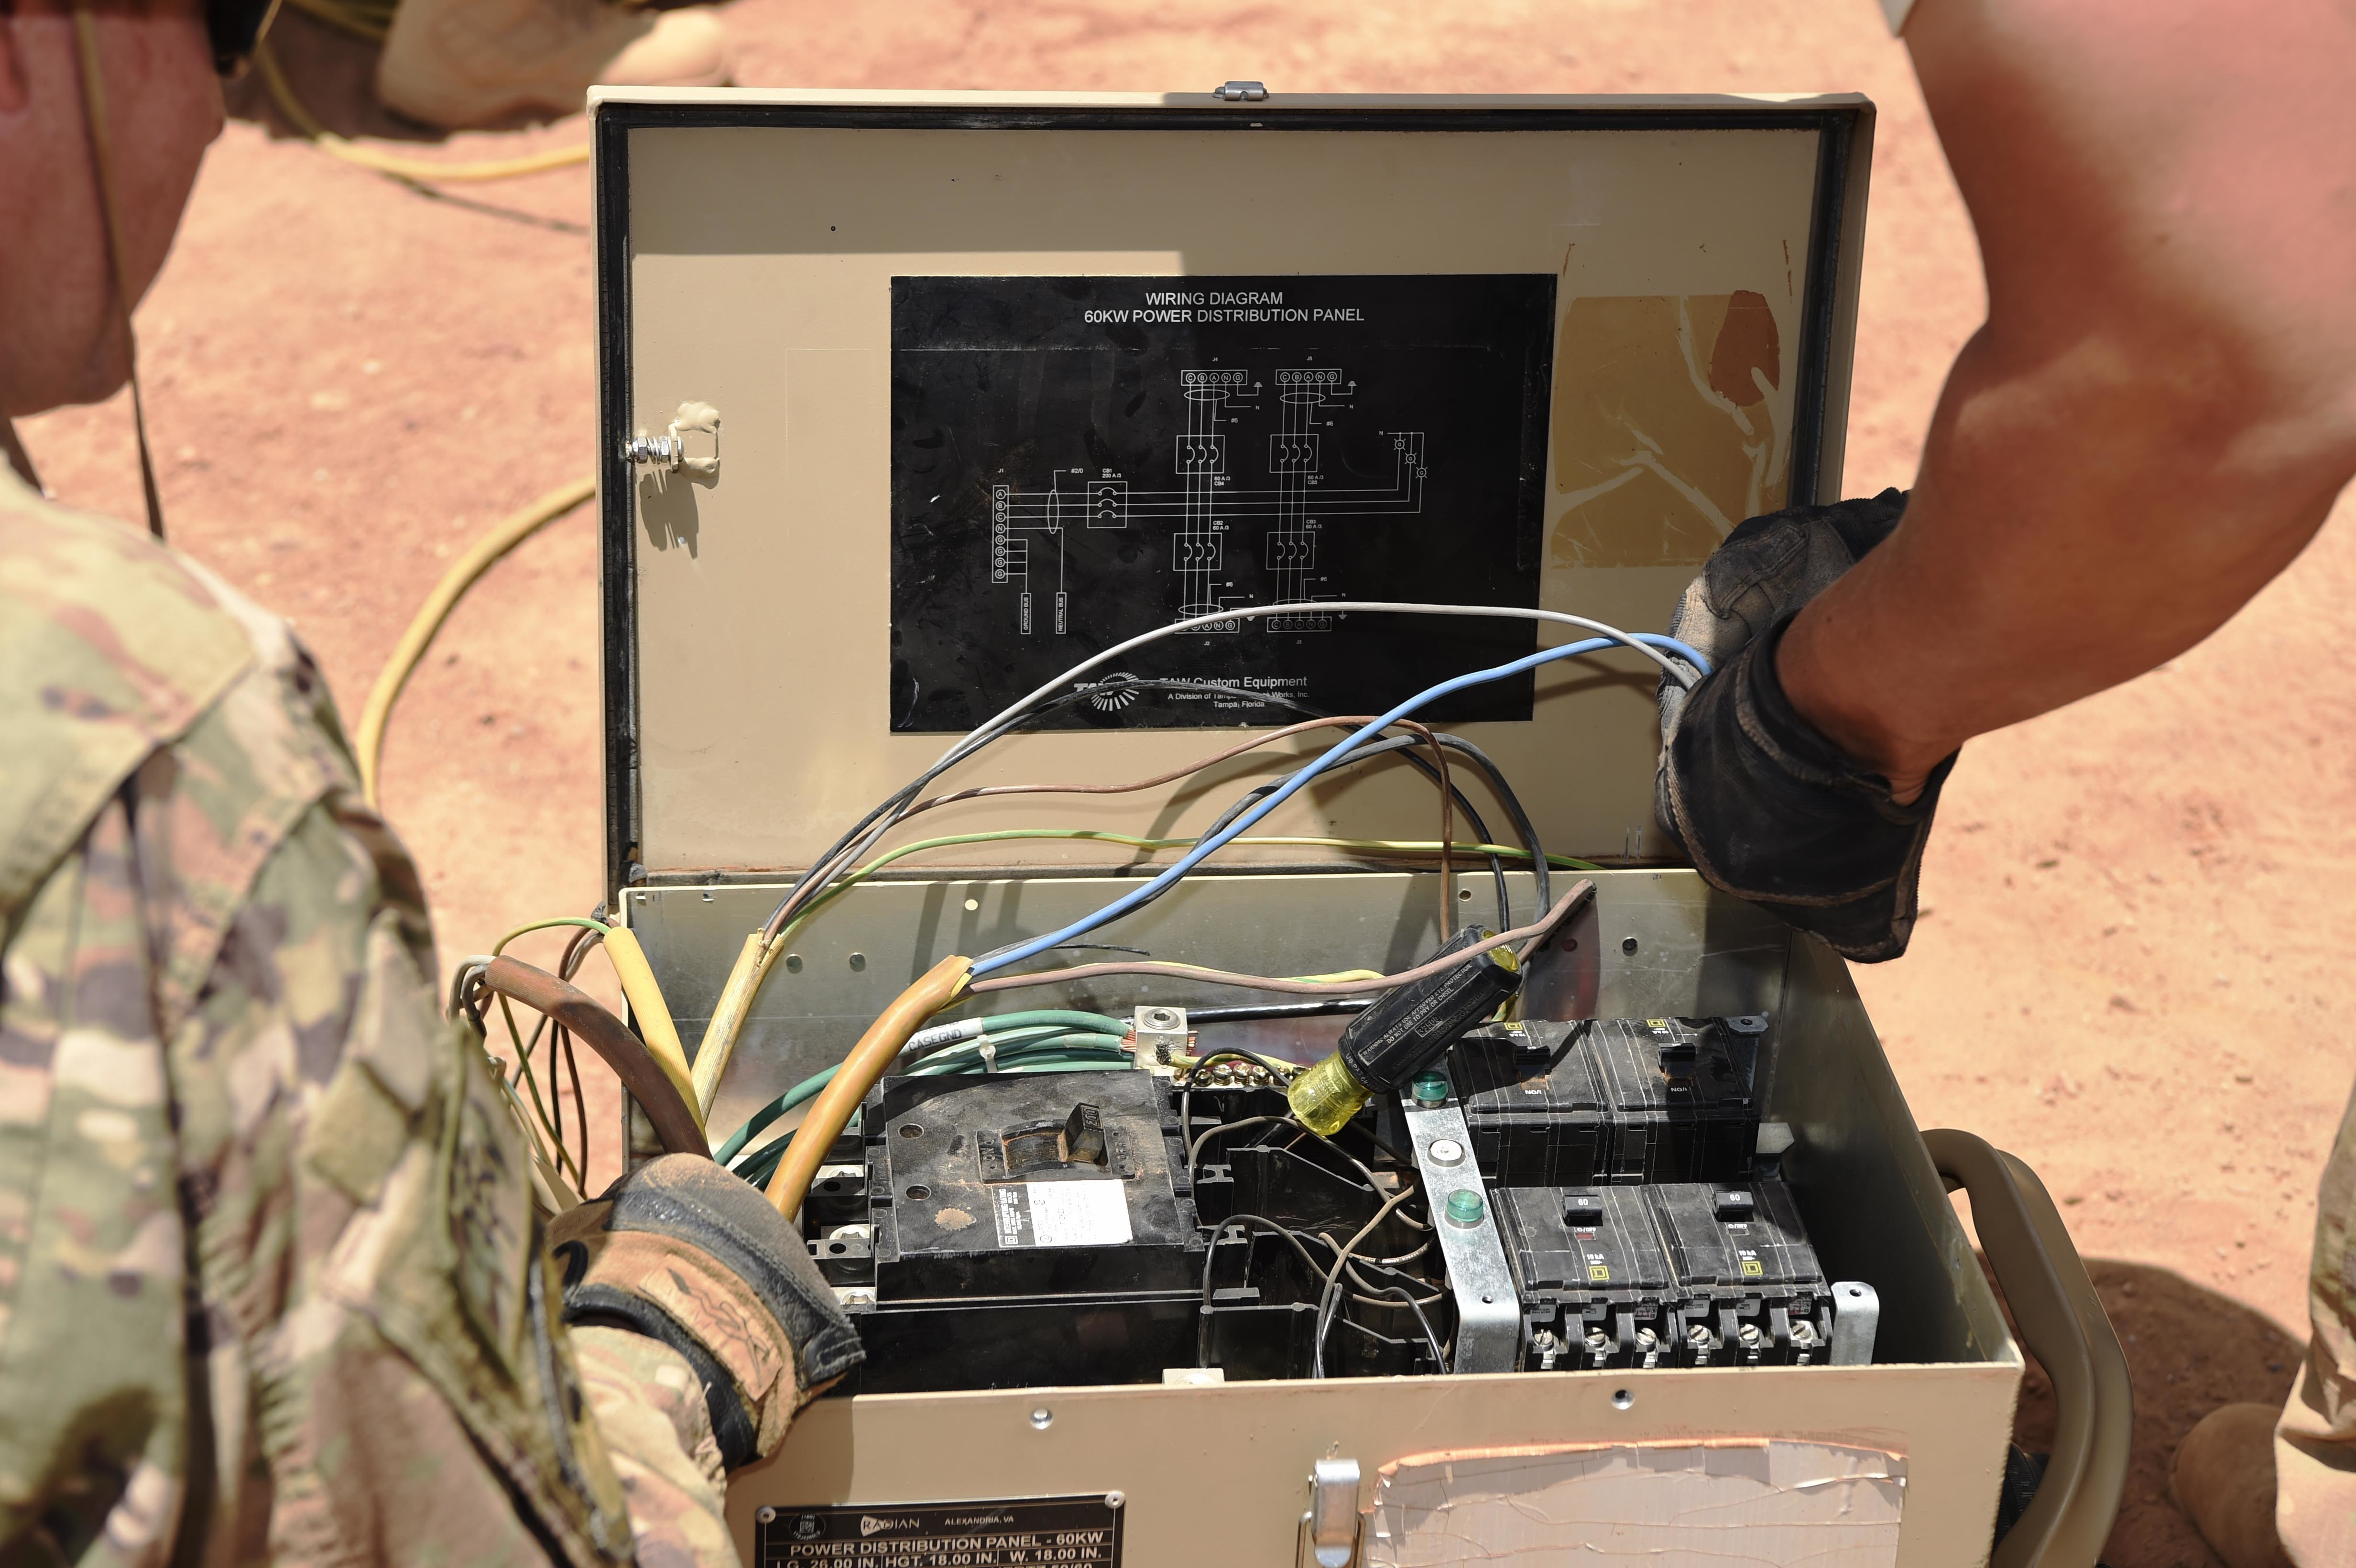 united states africa command image united states africa command united coolair wiring diagrams at n-0.co